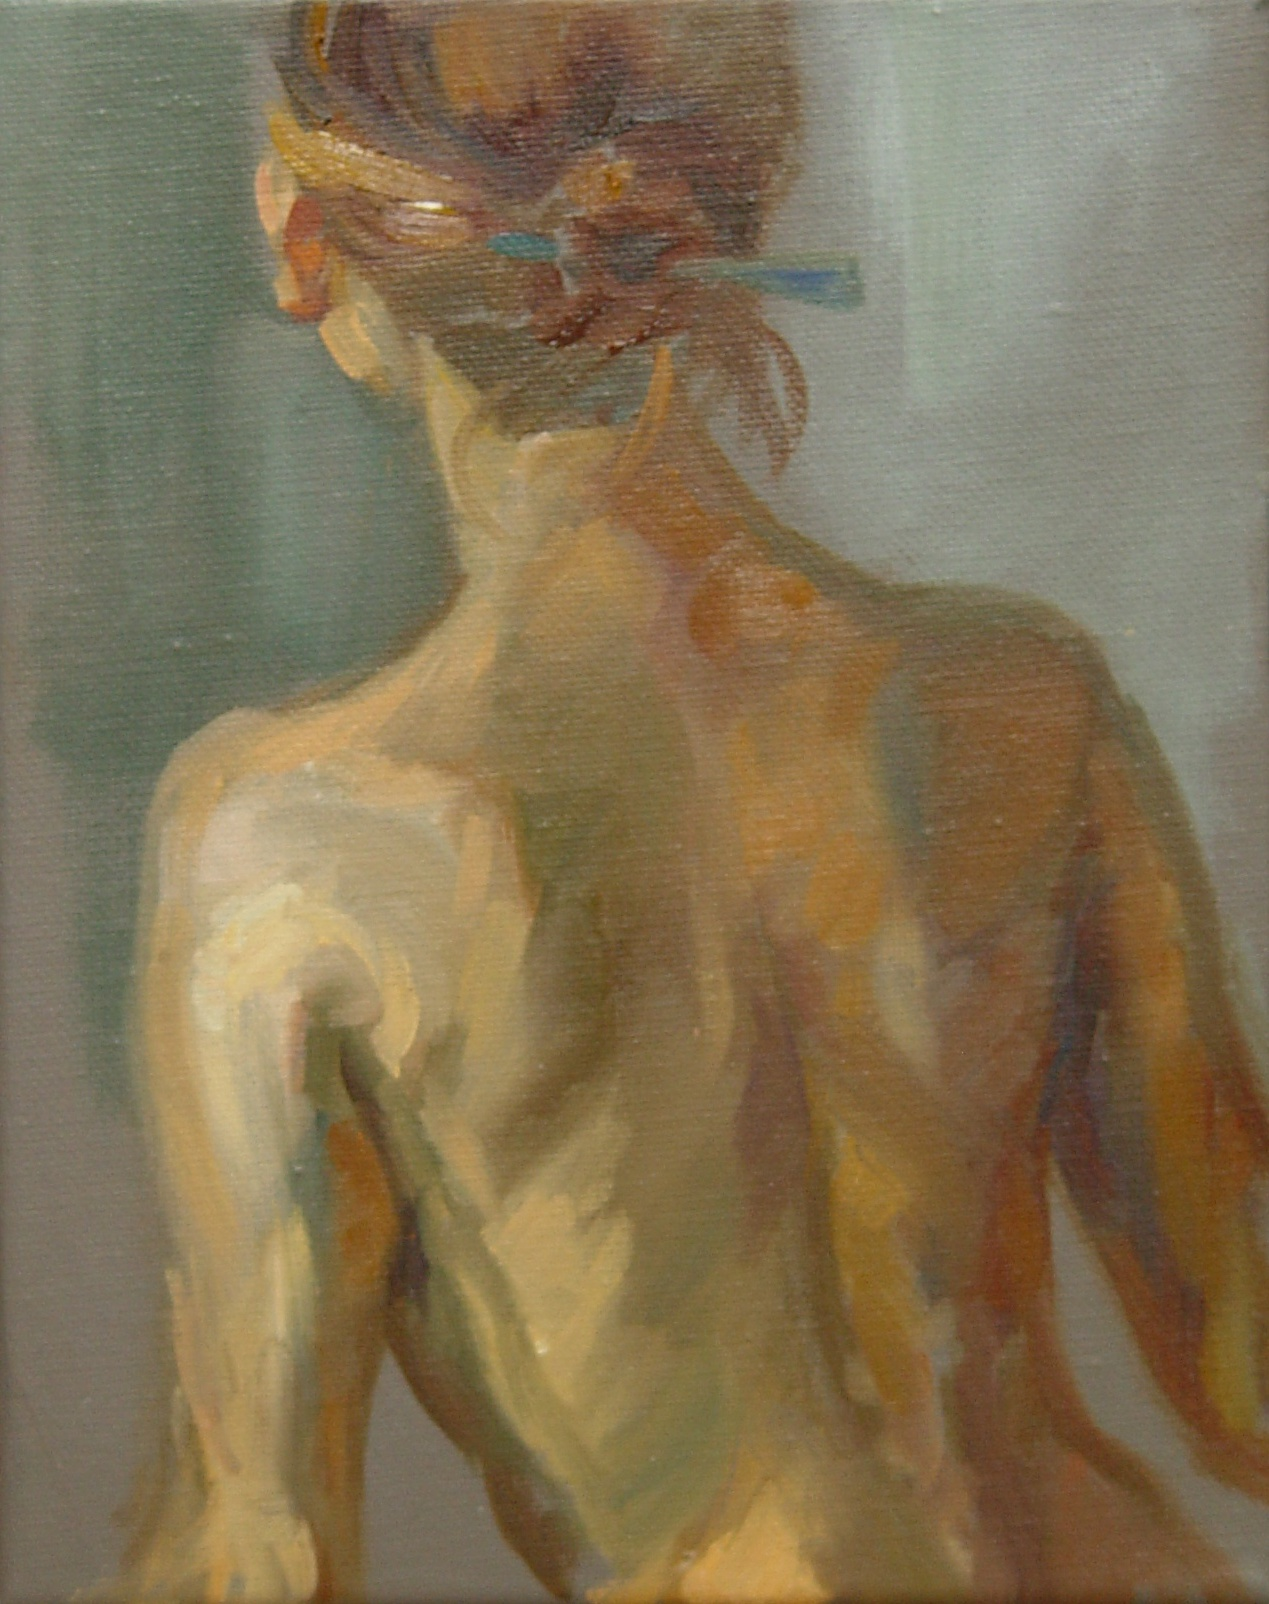 Julia's Back, oil